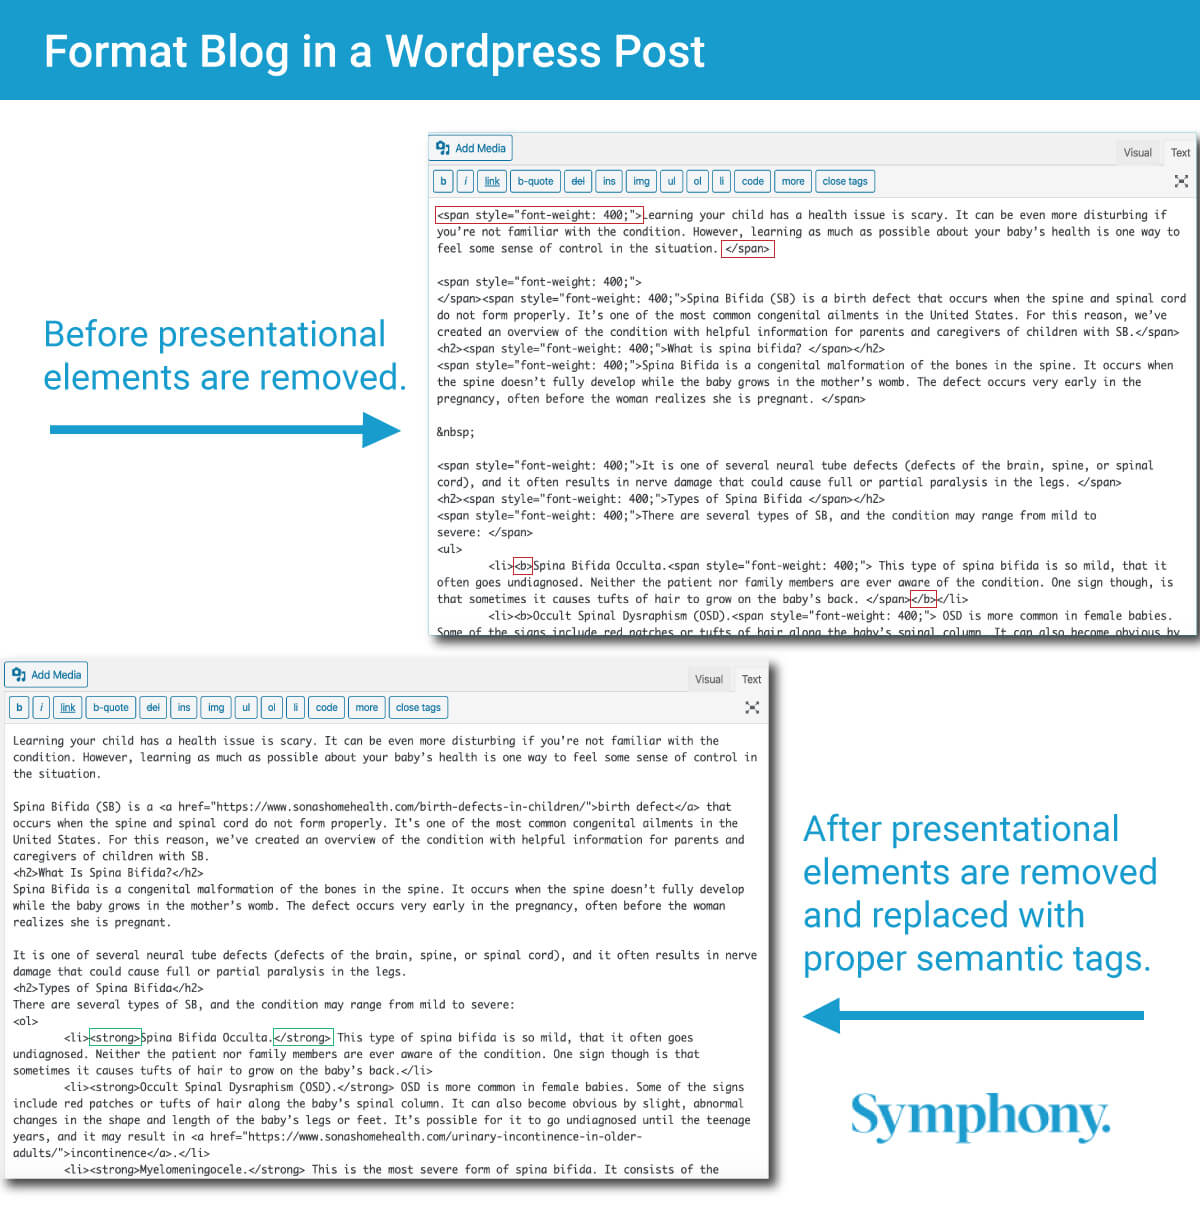 Format Blog in WordPress